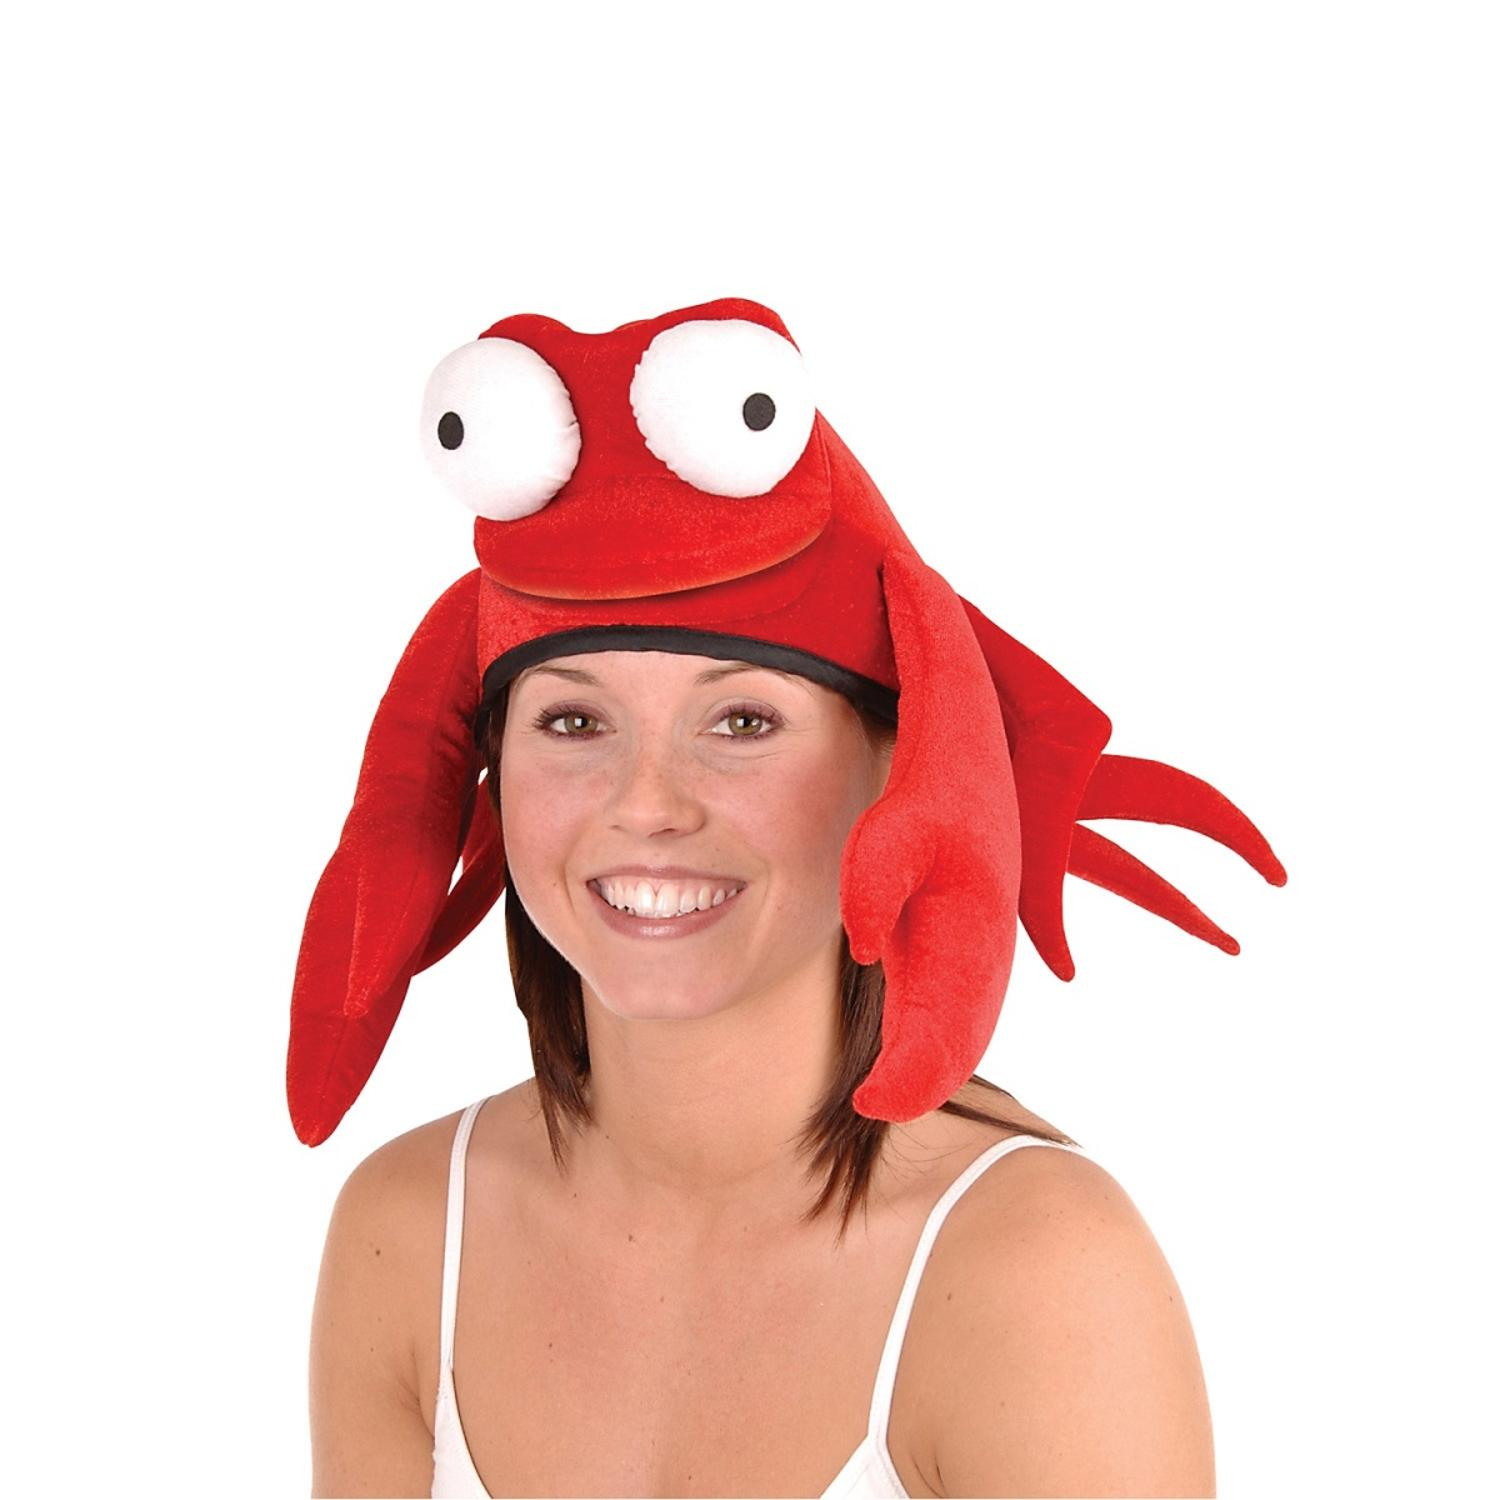 Pack of 6 Flashy Large Claw Red King Crab Soft Plush Party Hat